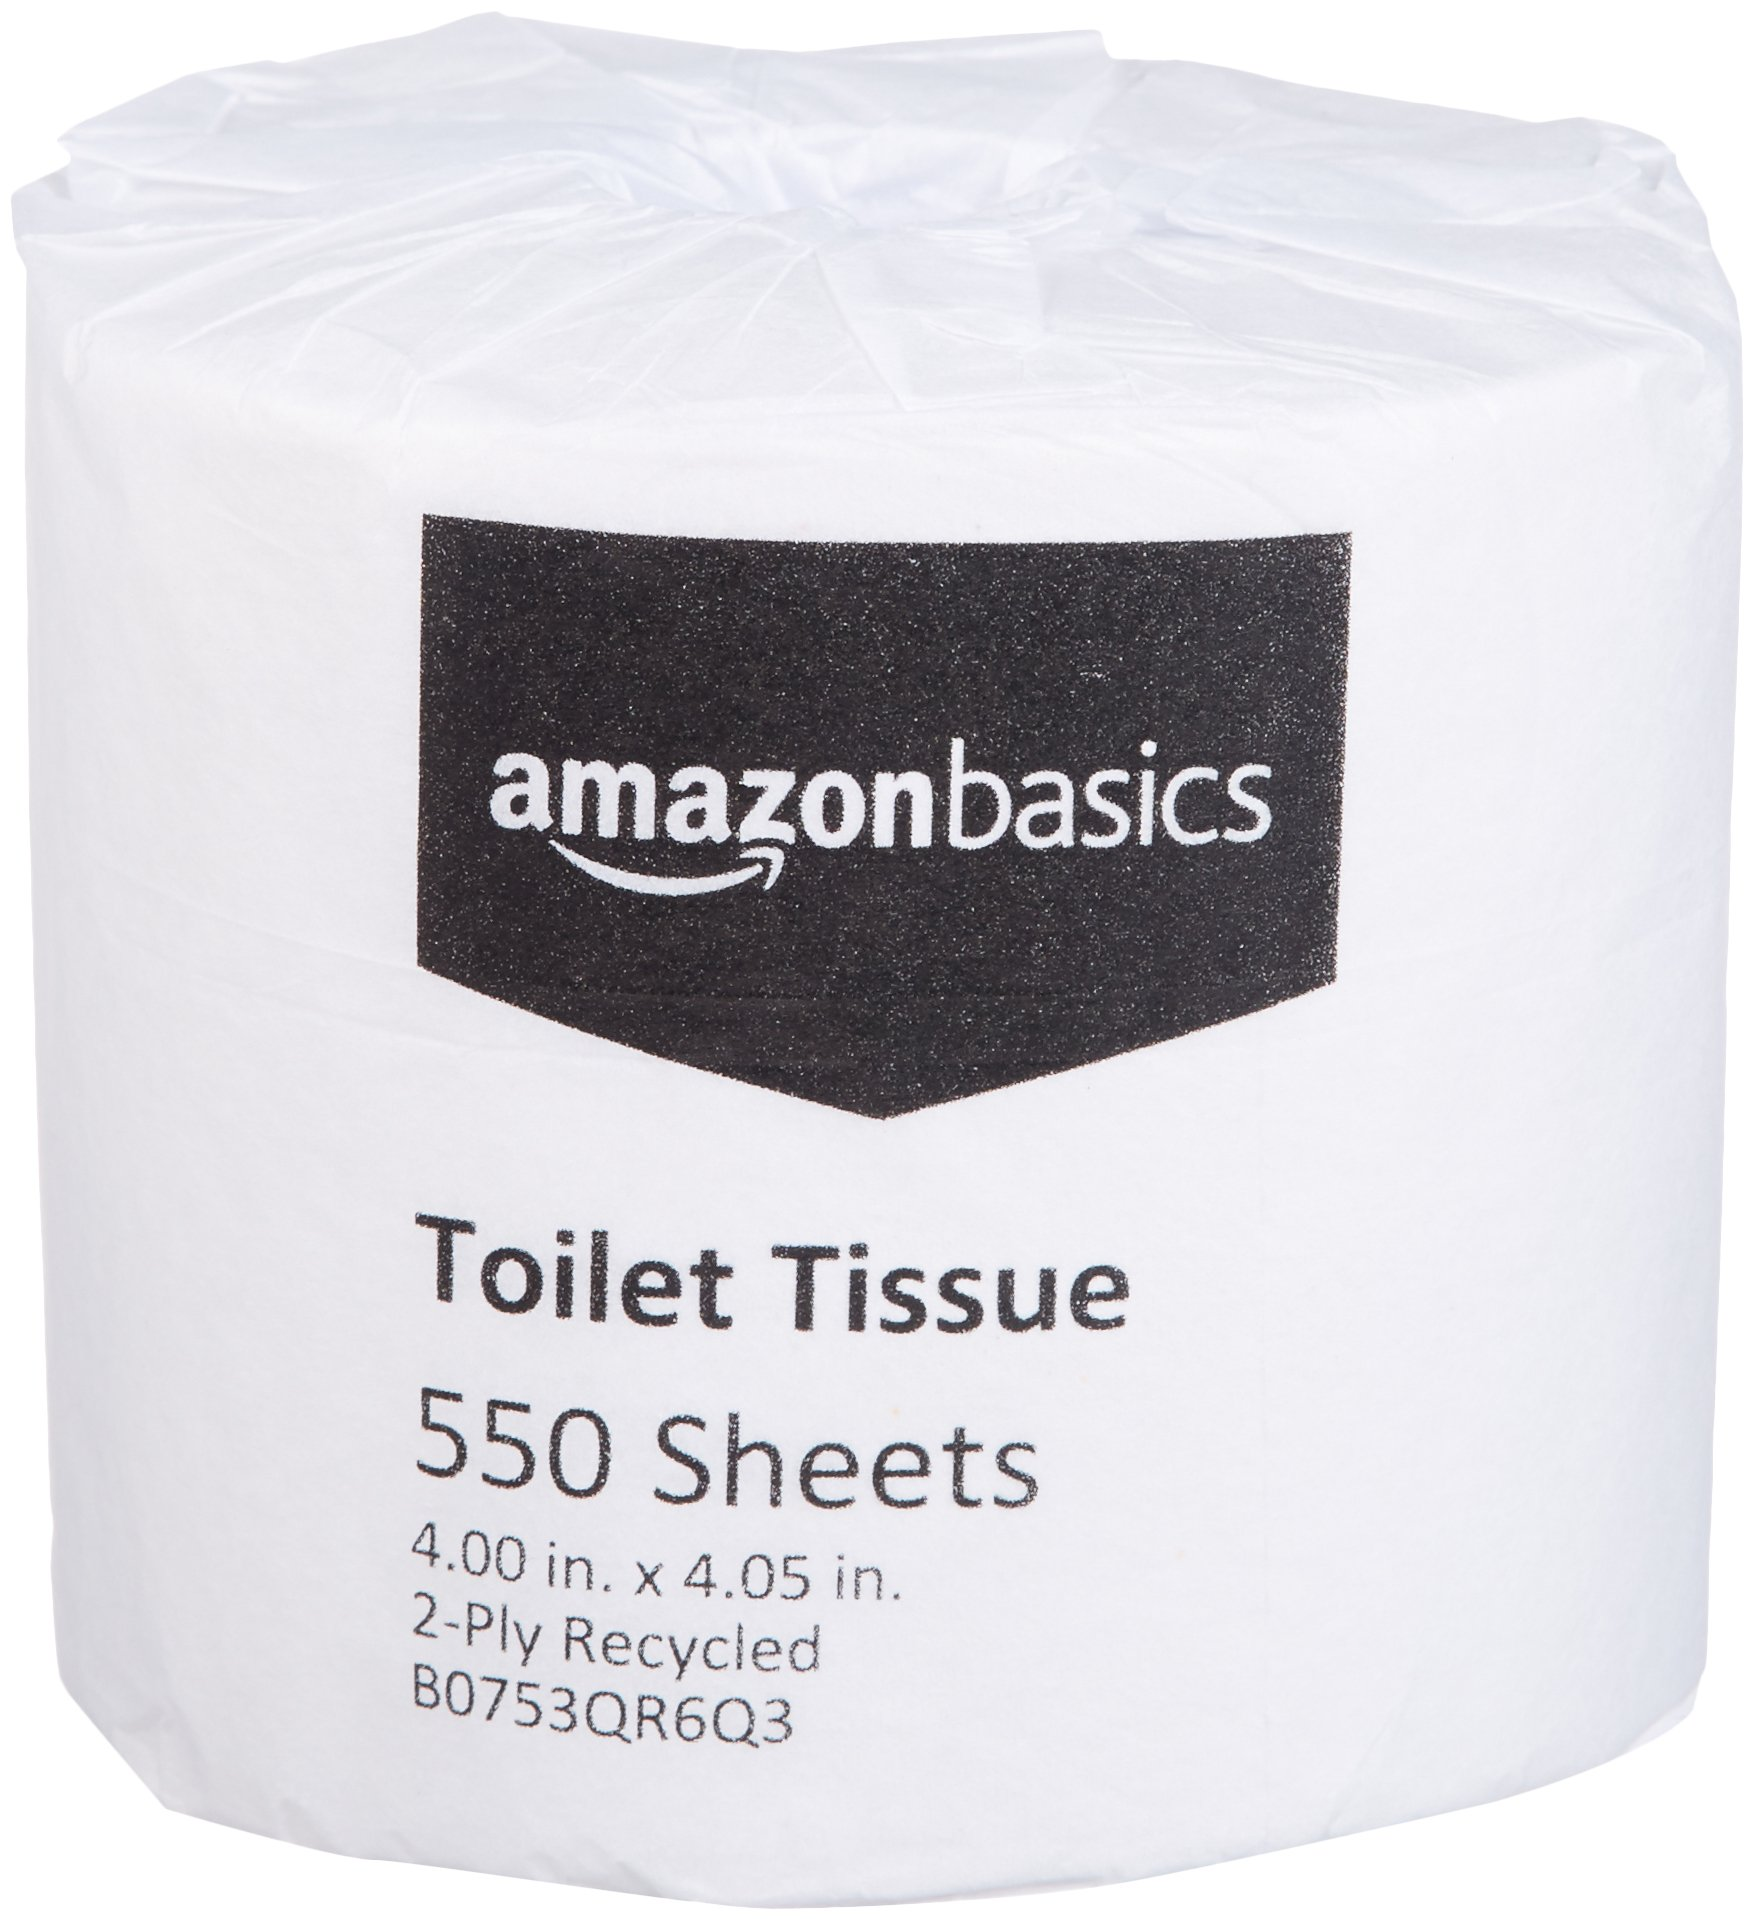 AmazonBasics Professional Economy Toilet Tissue for Businesses, 2-Ply, 550 Sheets per Roll, 80 Rolls